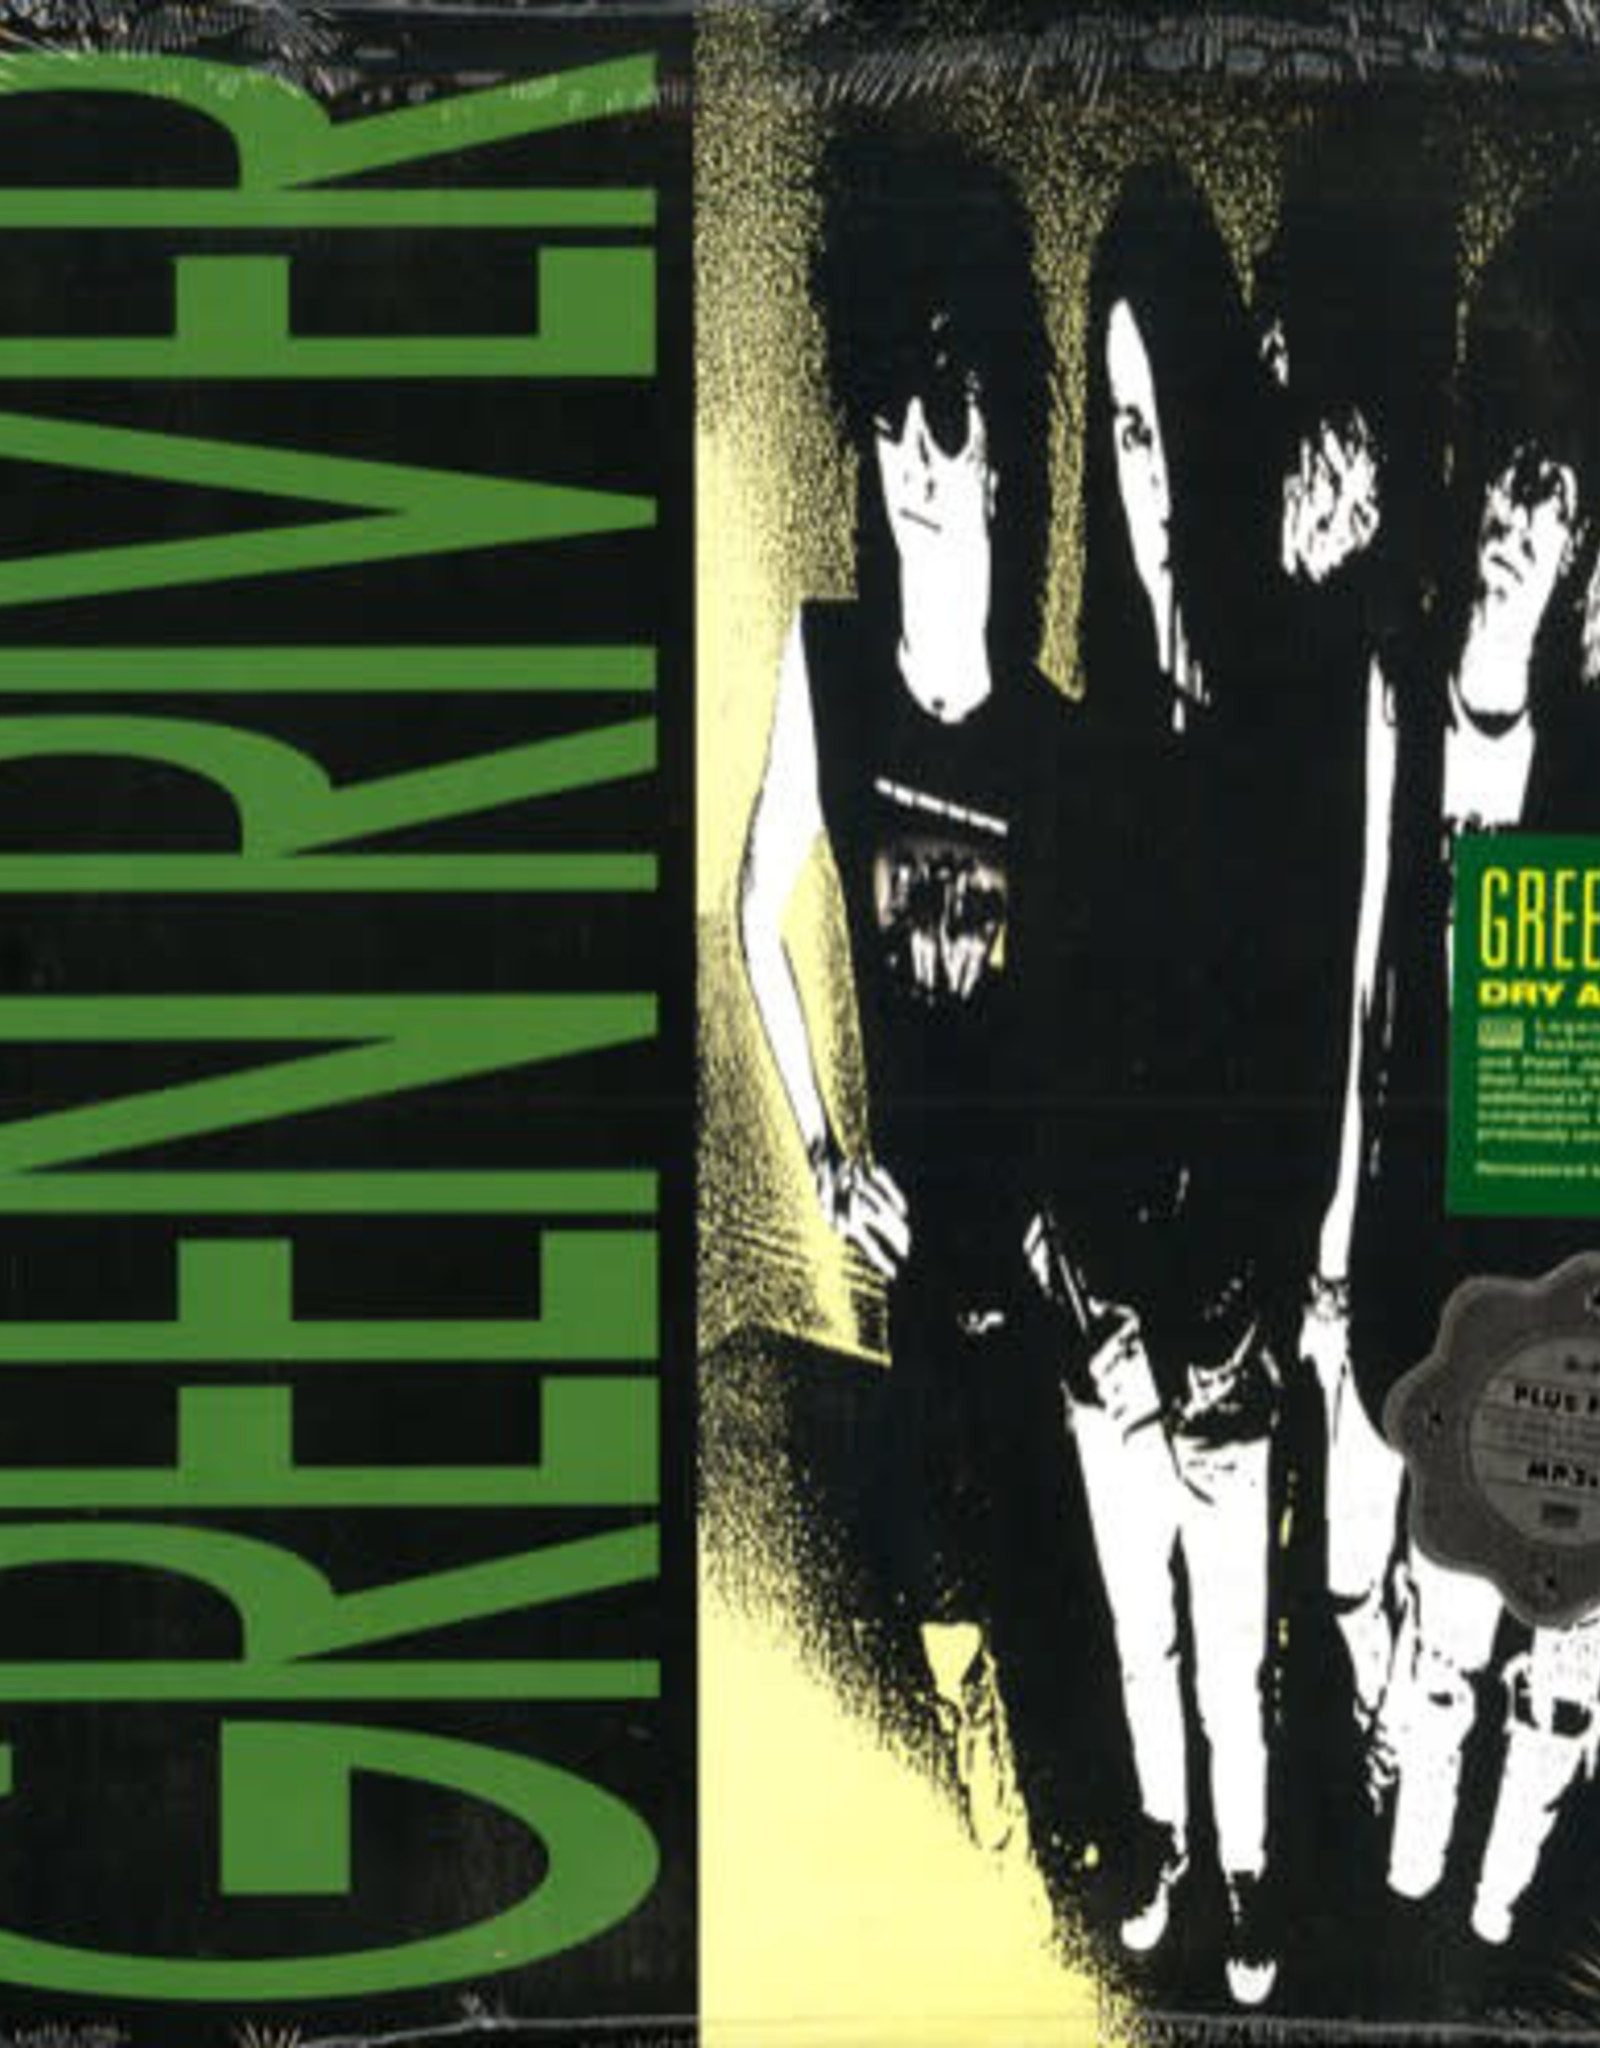 Green River - Dry As A Bone (Deluxe)